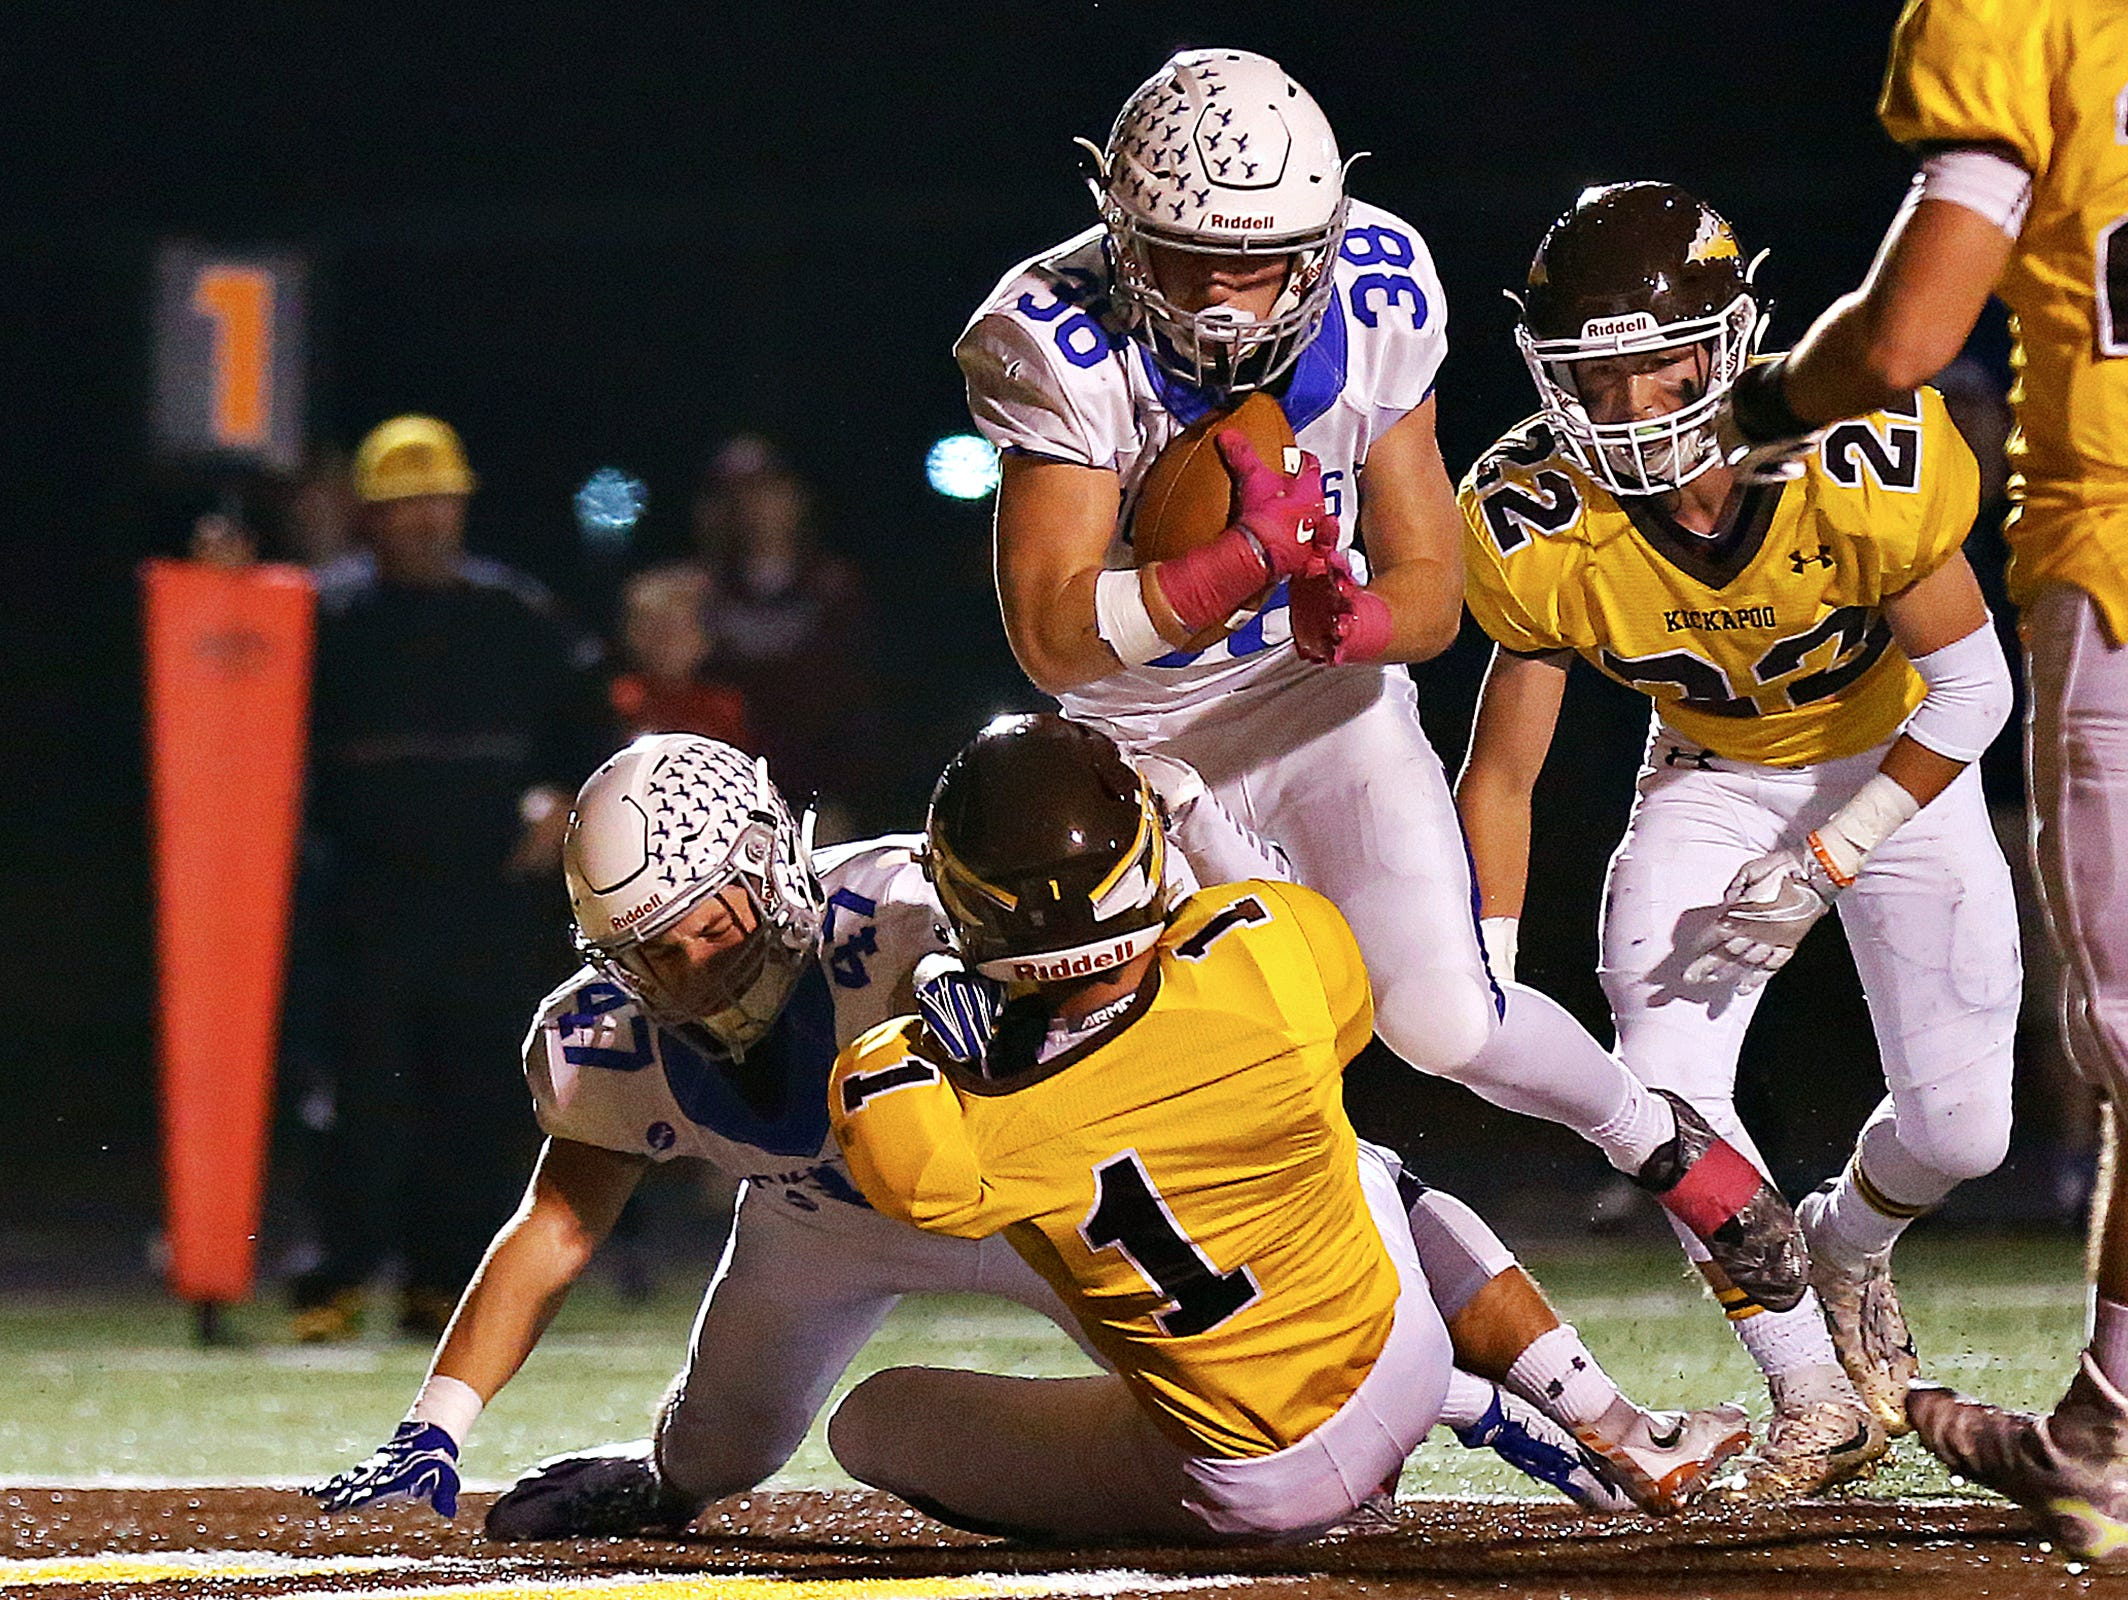 Rockhurst High School running back Brady McCanles (38) barrels over Chiefs cornerback Peyton Moore (1) to score a touchdown during first quarter action of the Class 6 playoff game between Rockhurst High School and Kickapoo High School played at Pottenger Stadium in Springfield, Mo. on Oct. 28, 2016.